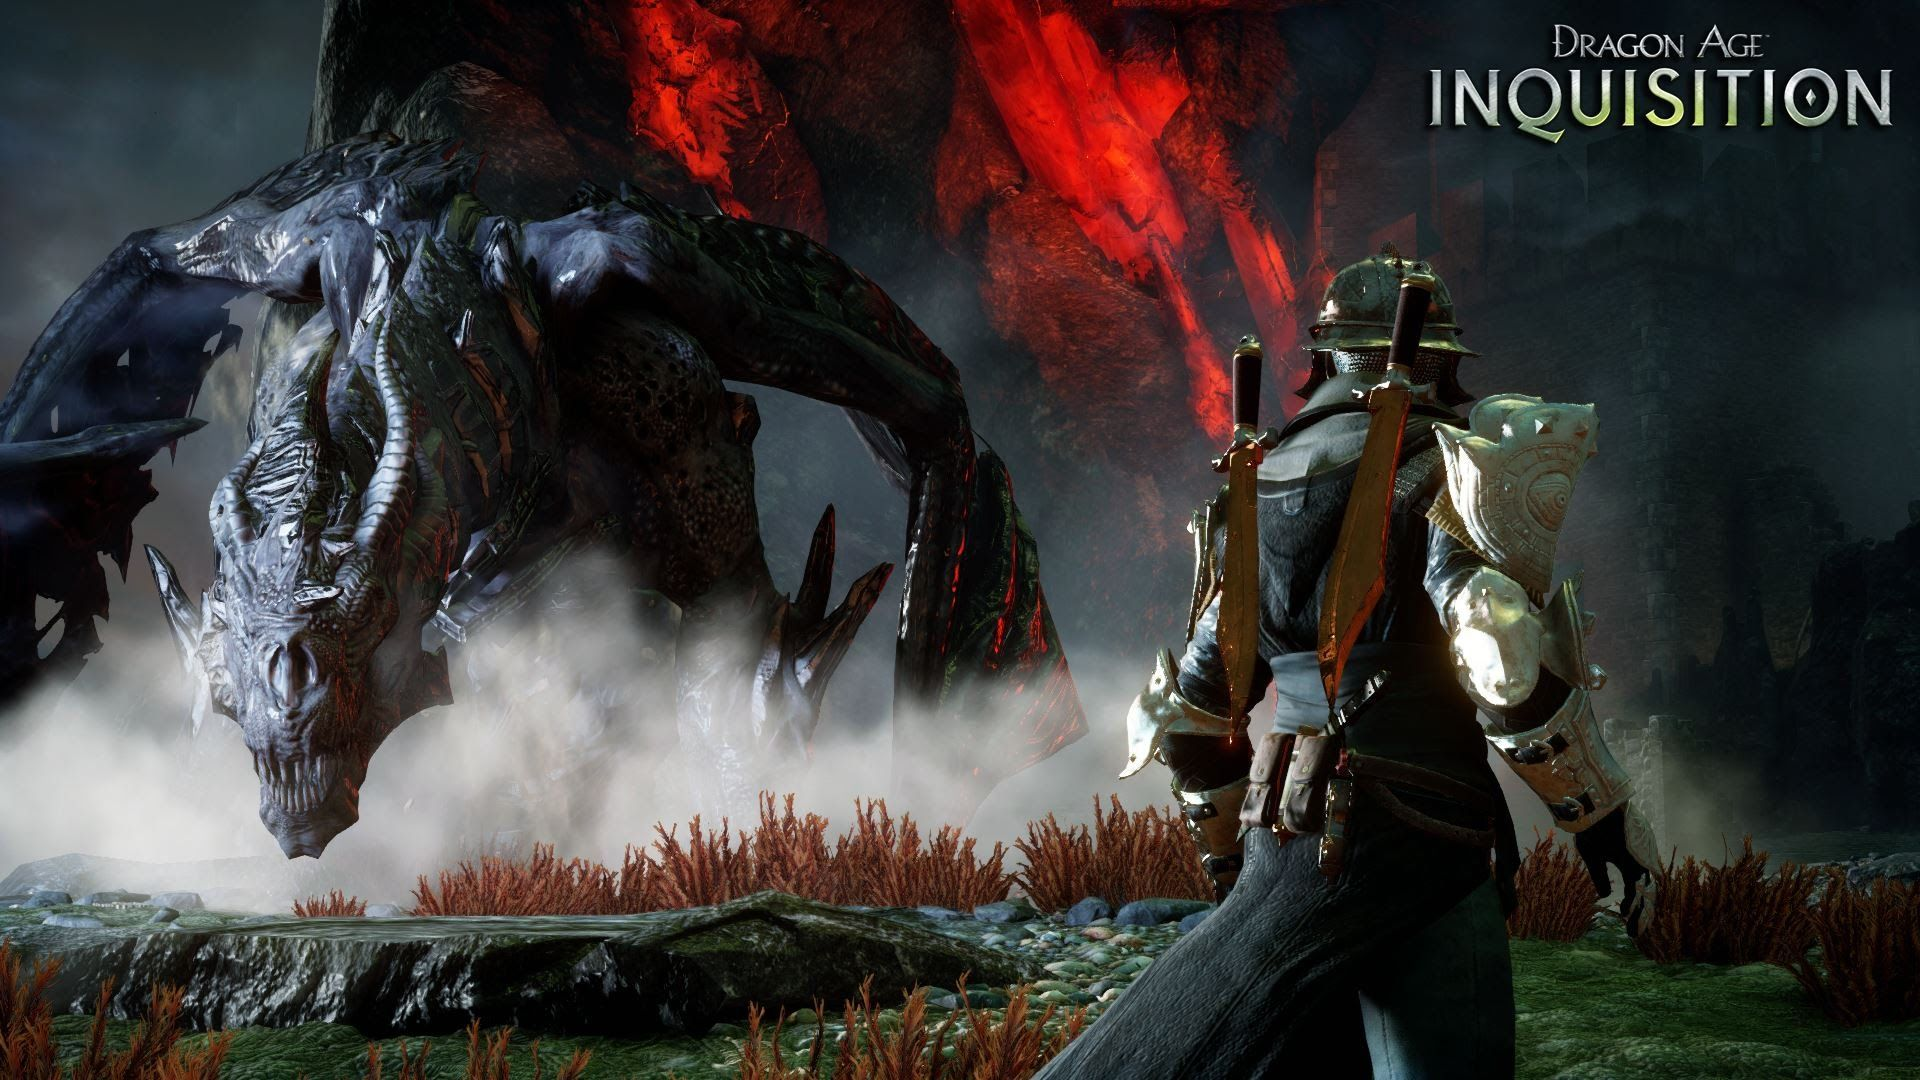 193 dragon age: inquisition hd wallpapers | backgrounds | best